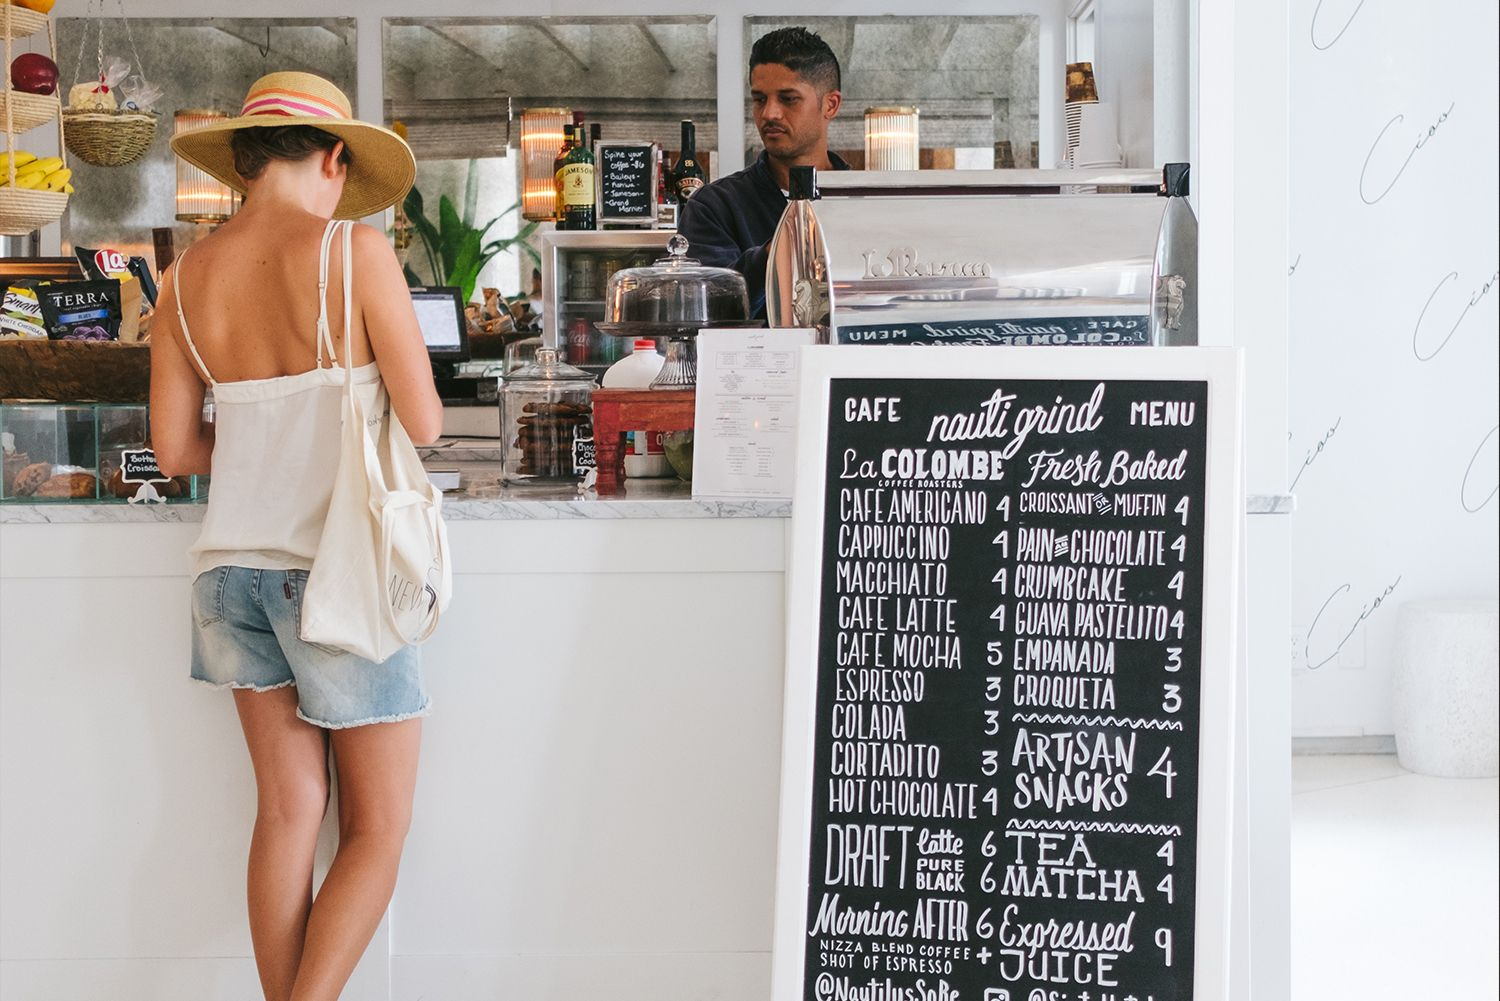 8 Restaurant Menu Pricing + Ingredient Costing Tips